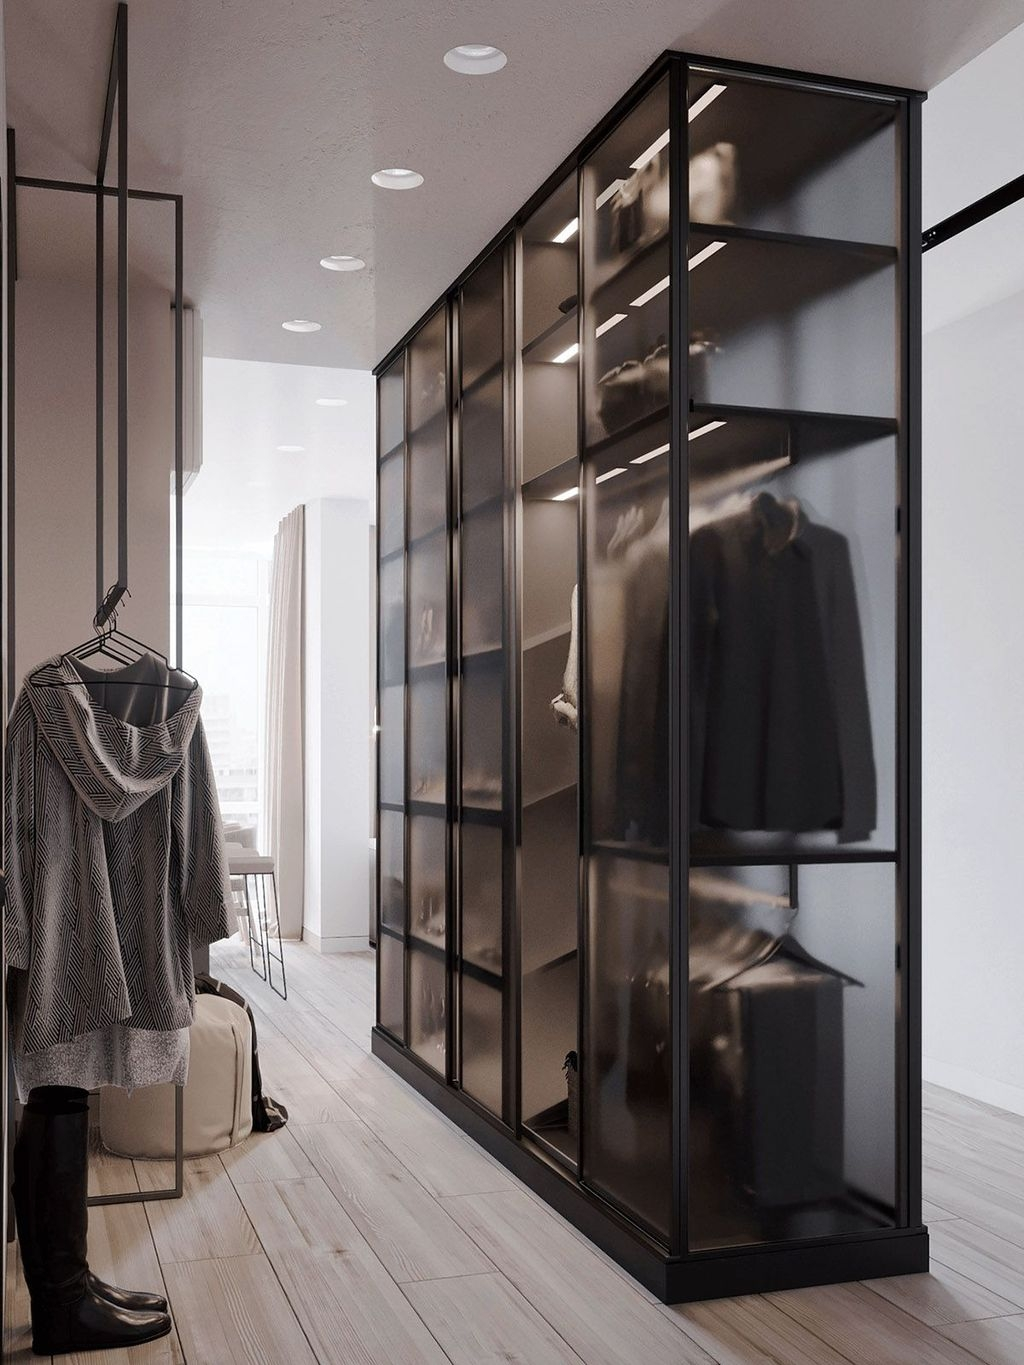 Spectacular Wardrobe Designs Ideas To Store Your Clothes In31